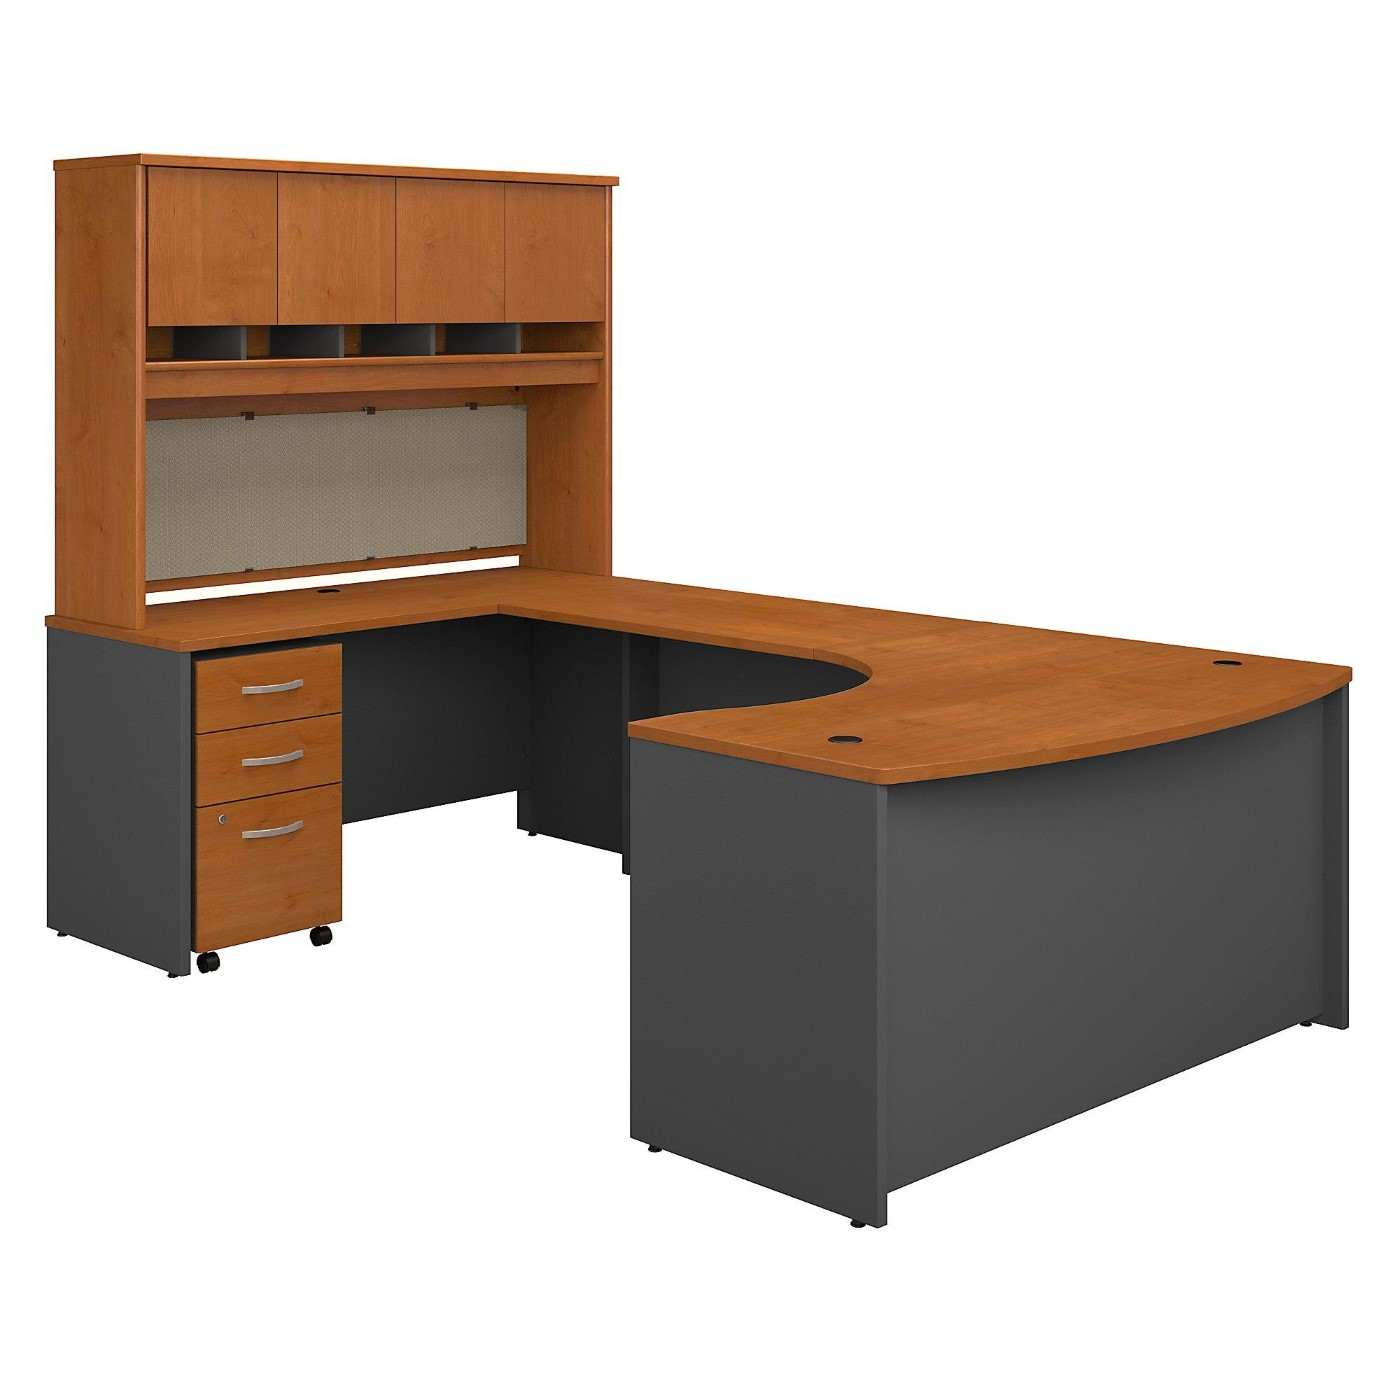 <font color=#c60><b>BUSH BUSINESS FURNITURE SERIES C 60W RIGHT HANDED BOW FRONT U SHAPED DESK WITH HUTCH AND STORAGE. FREE SHIPPING</font></b></font>